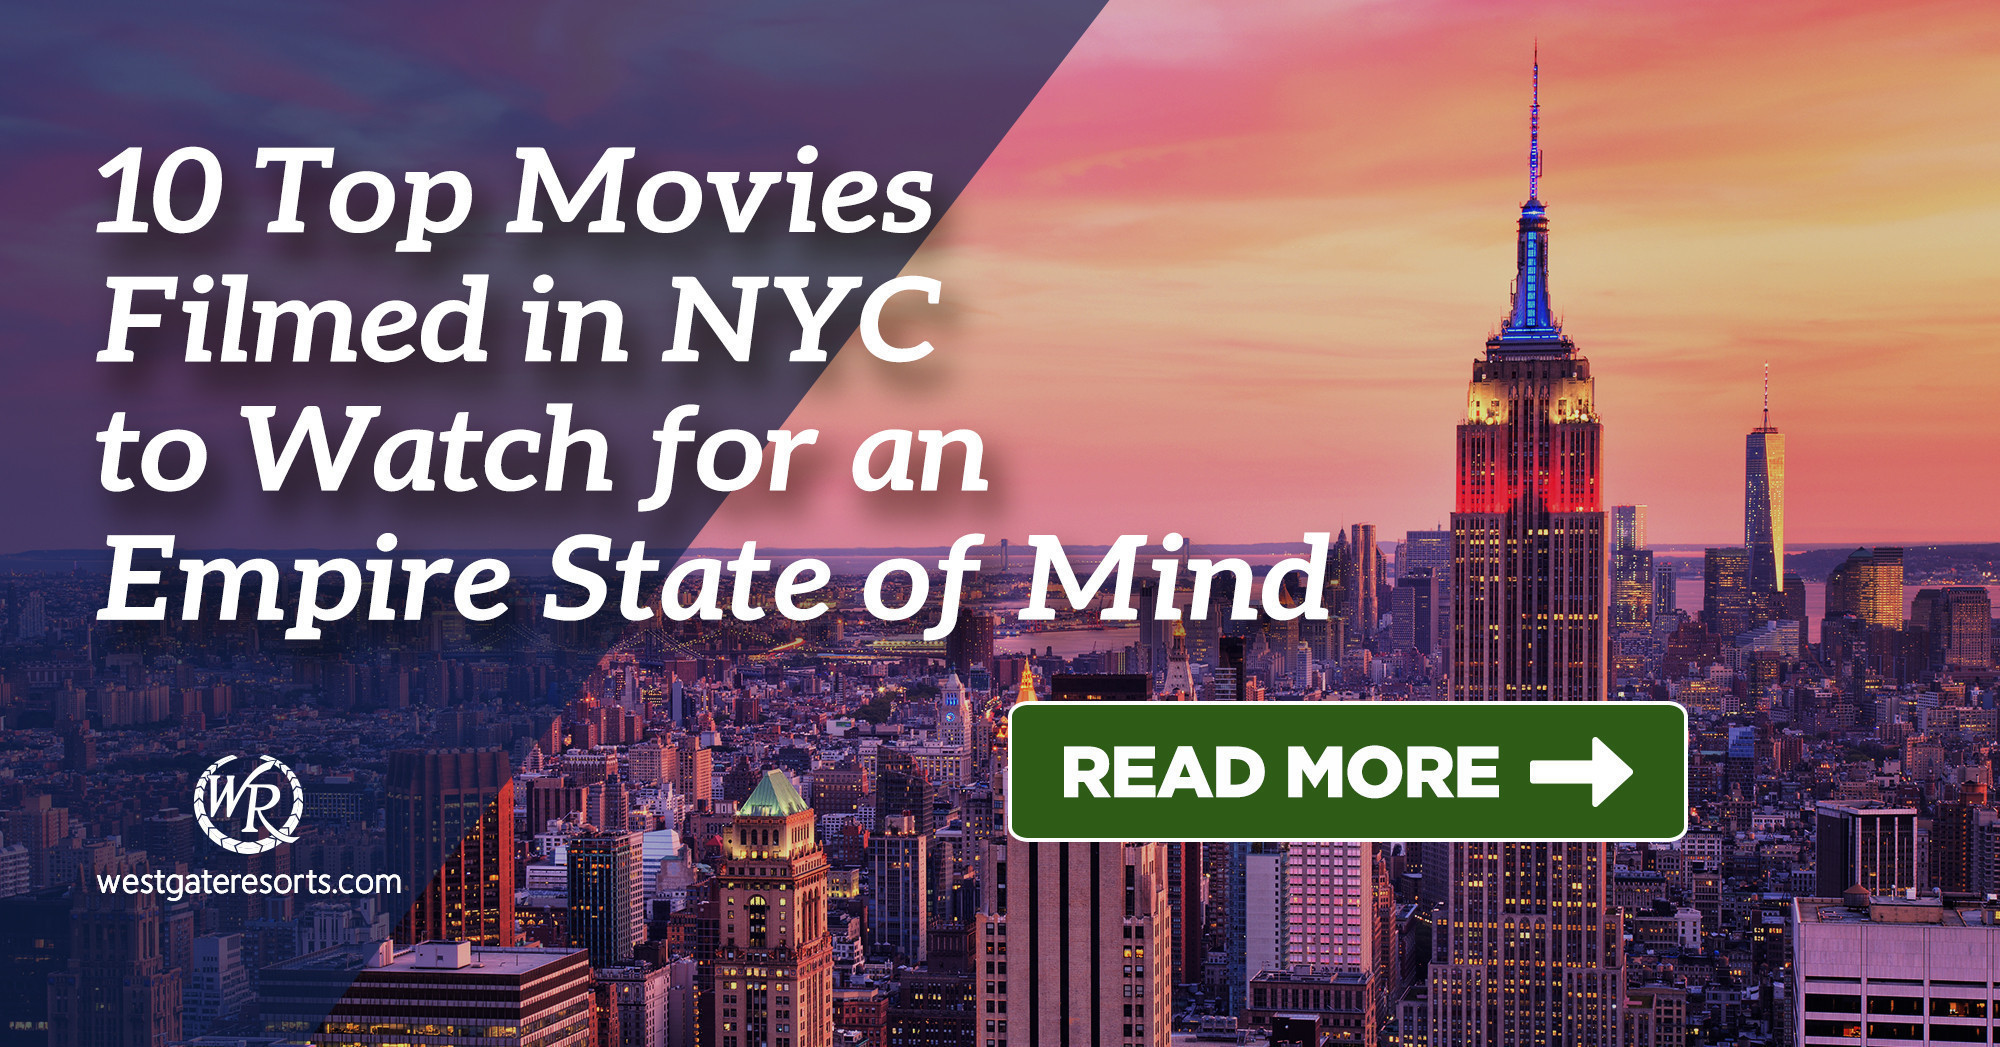 10 Top Movies Filmed in NYC to Watch for an Empire State of Mind